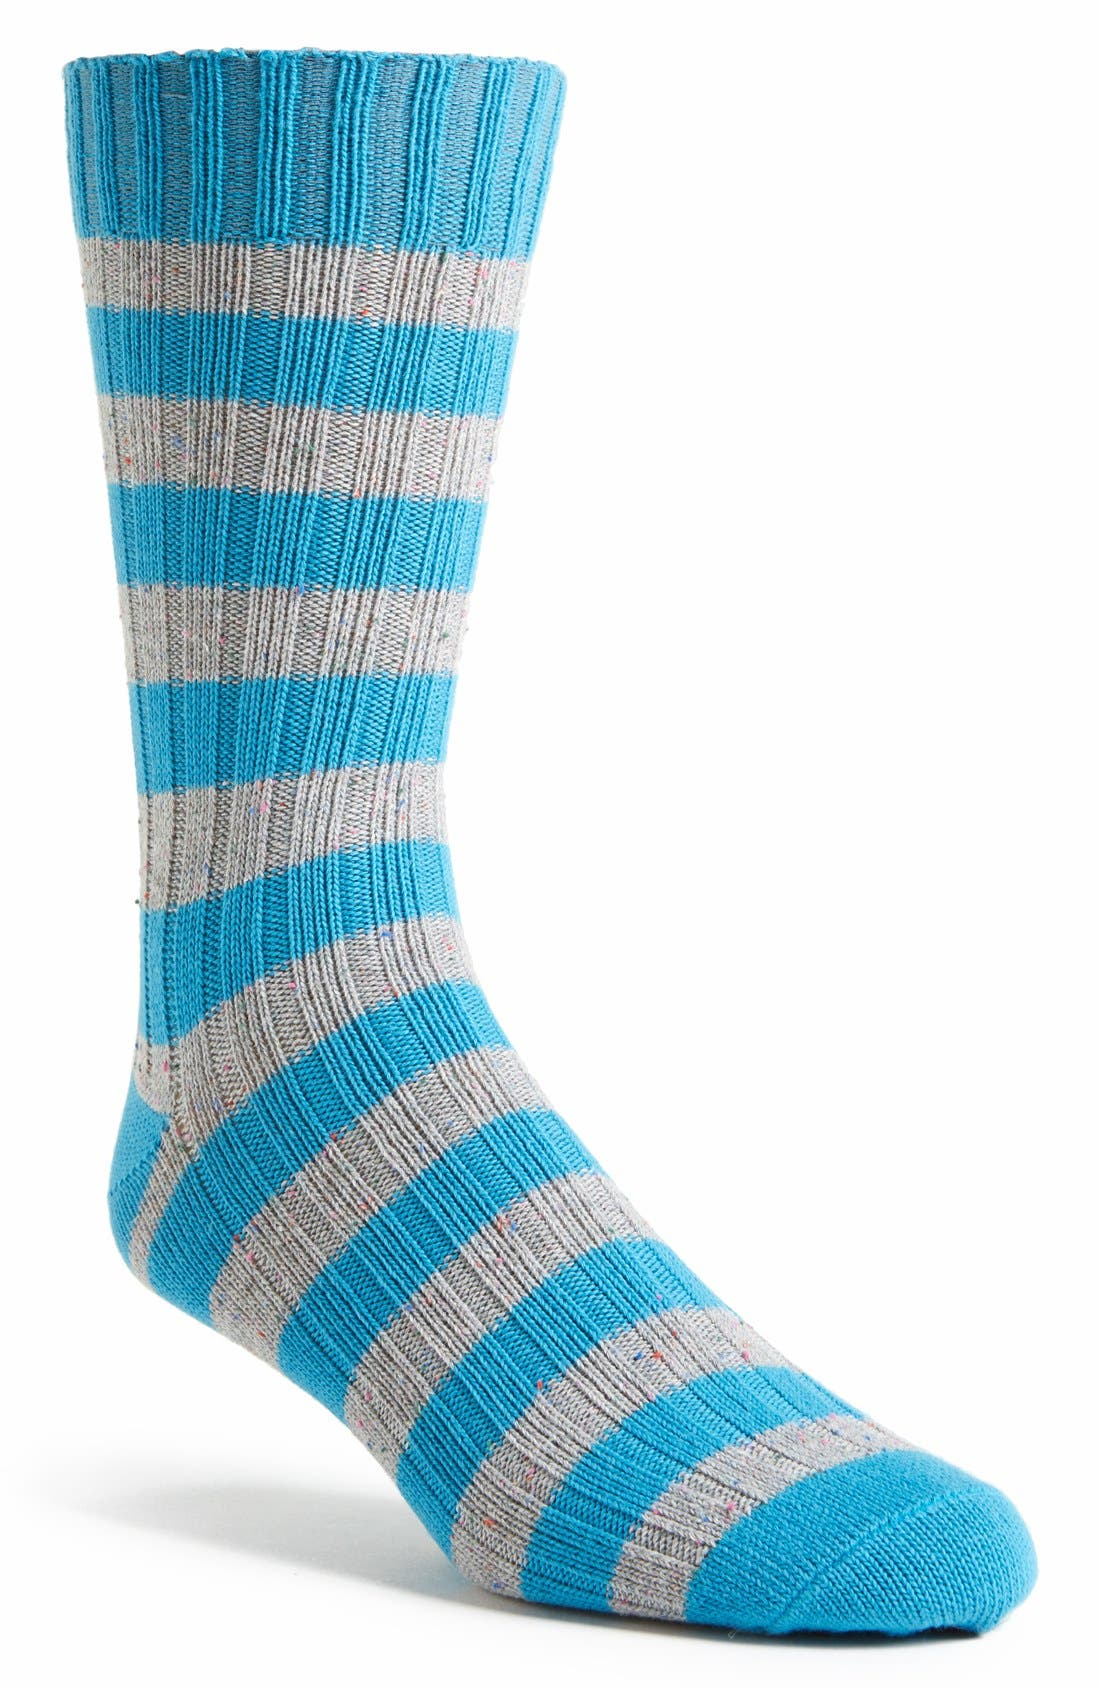 Alternate Image 1 Selected - PACT 'Confetti Stripe' Socks